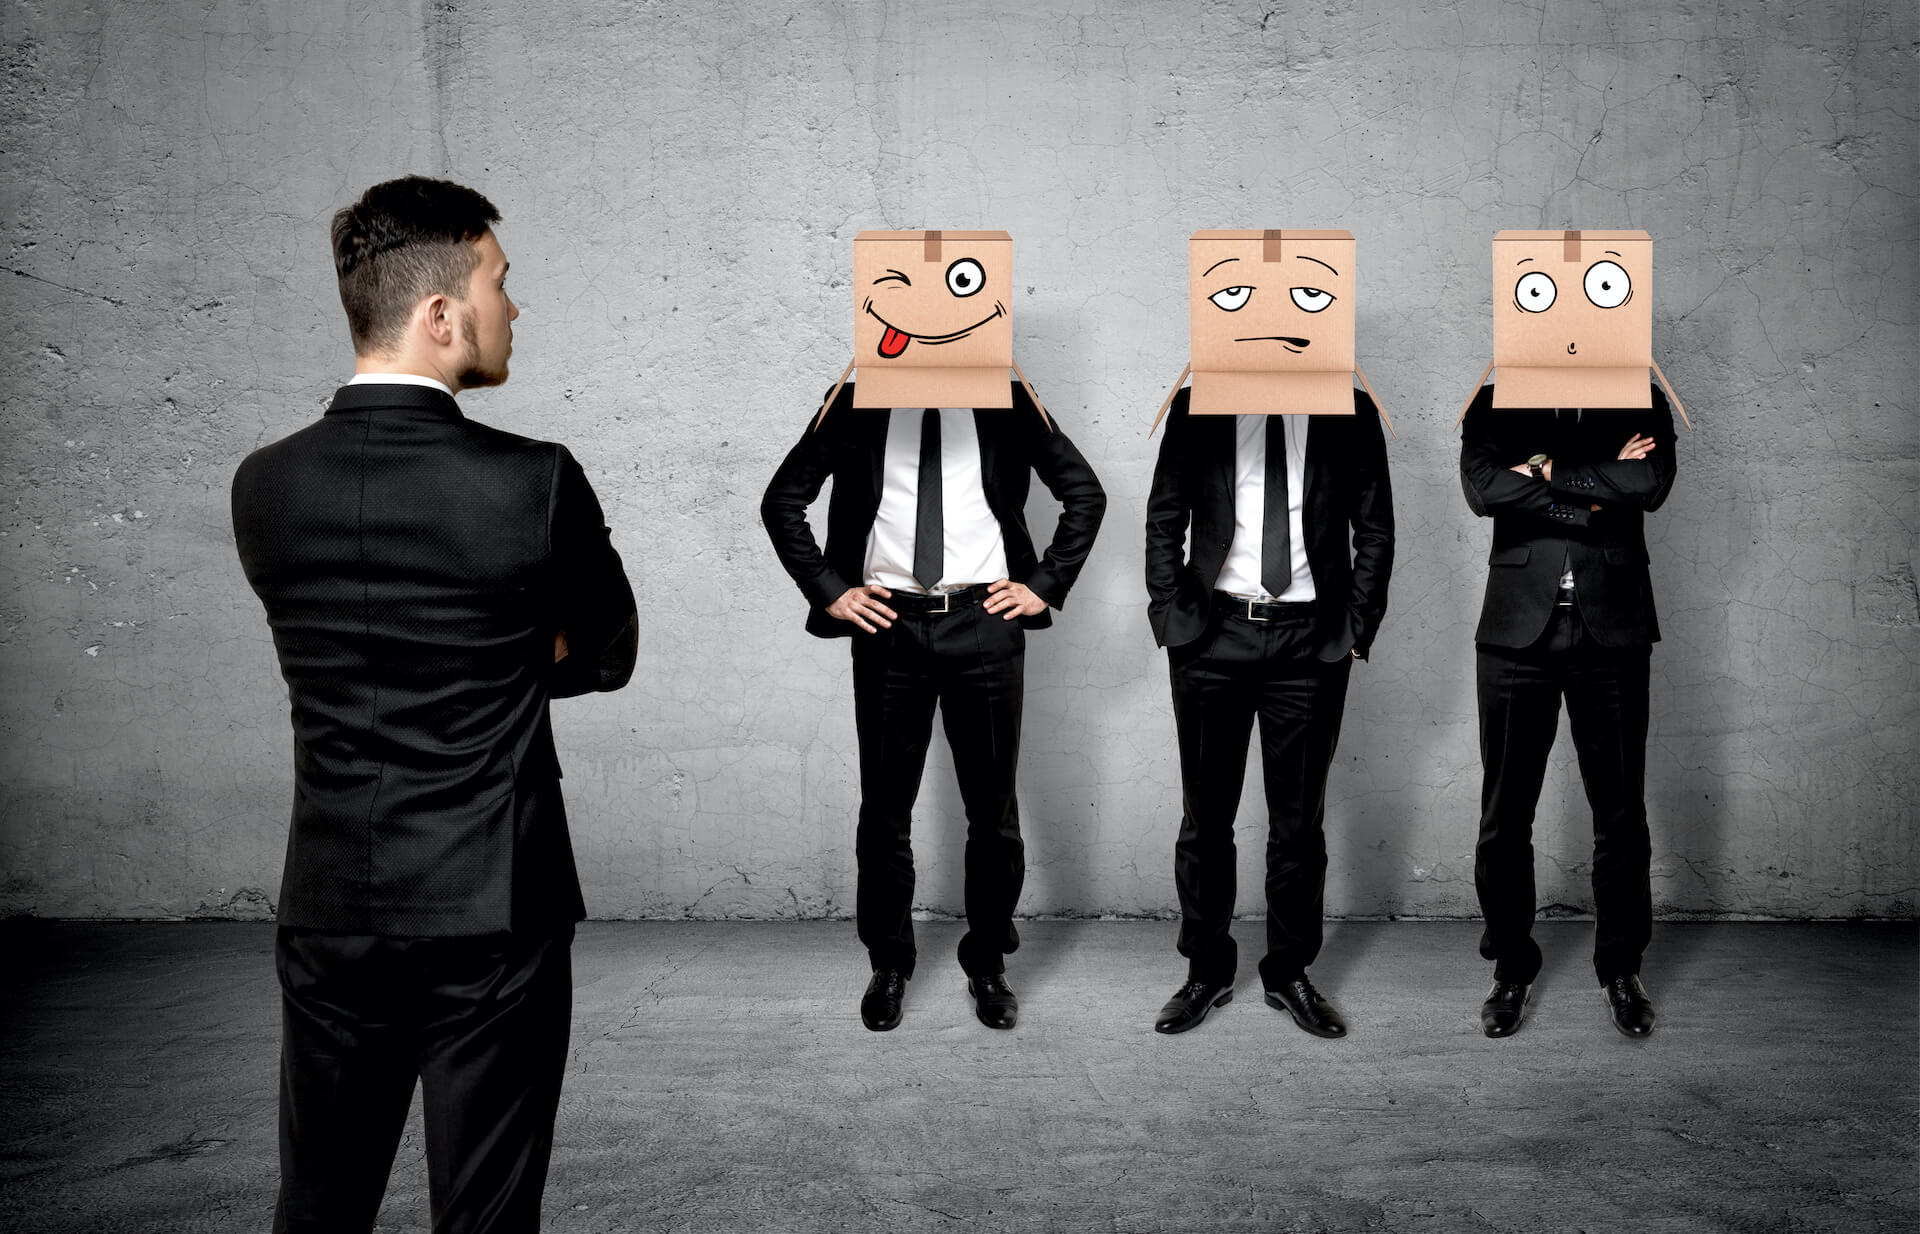 Man in business suit looking at three other men in business suits with funny-face paper bags over their heads in a room with concrete walls